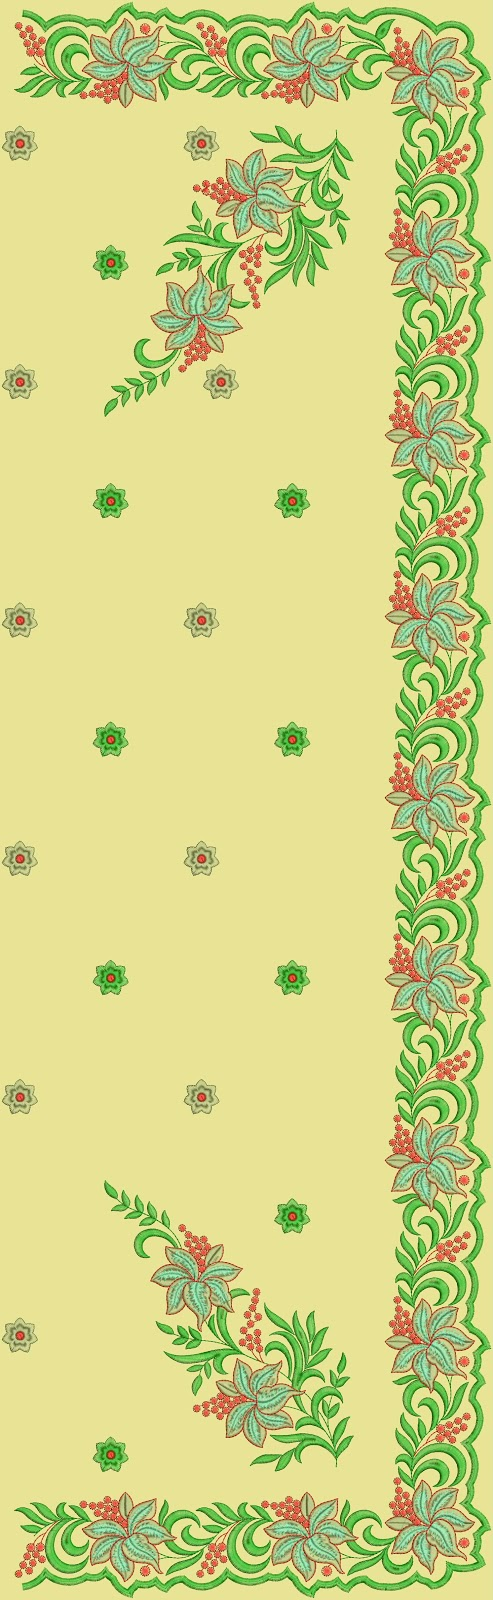 Embroidery butterfly design embroidery on saree makaroka designer sarees c pallu embroidery patterns embdesigntube bankloansurffo Images